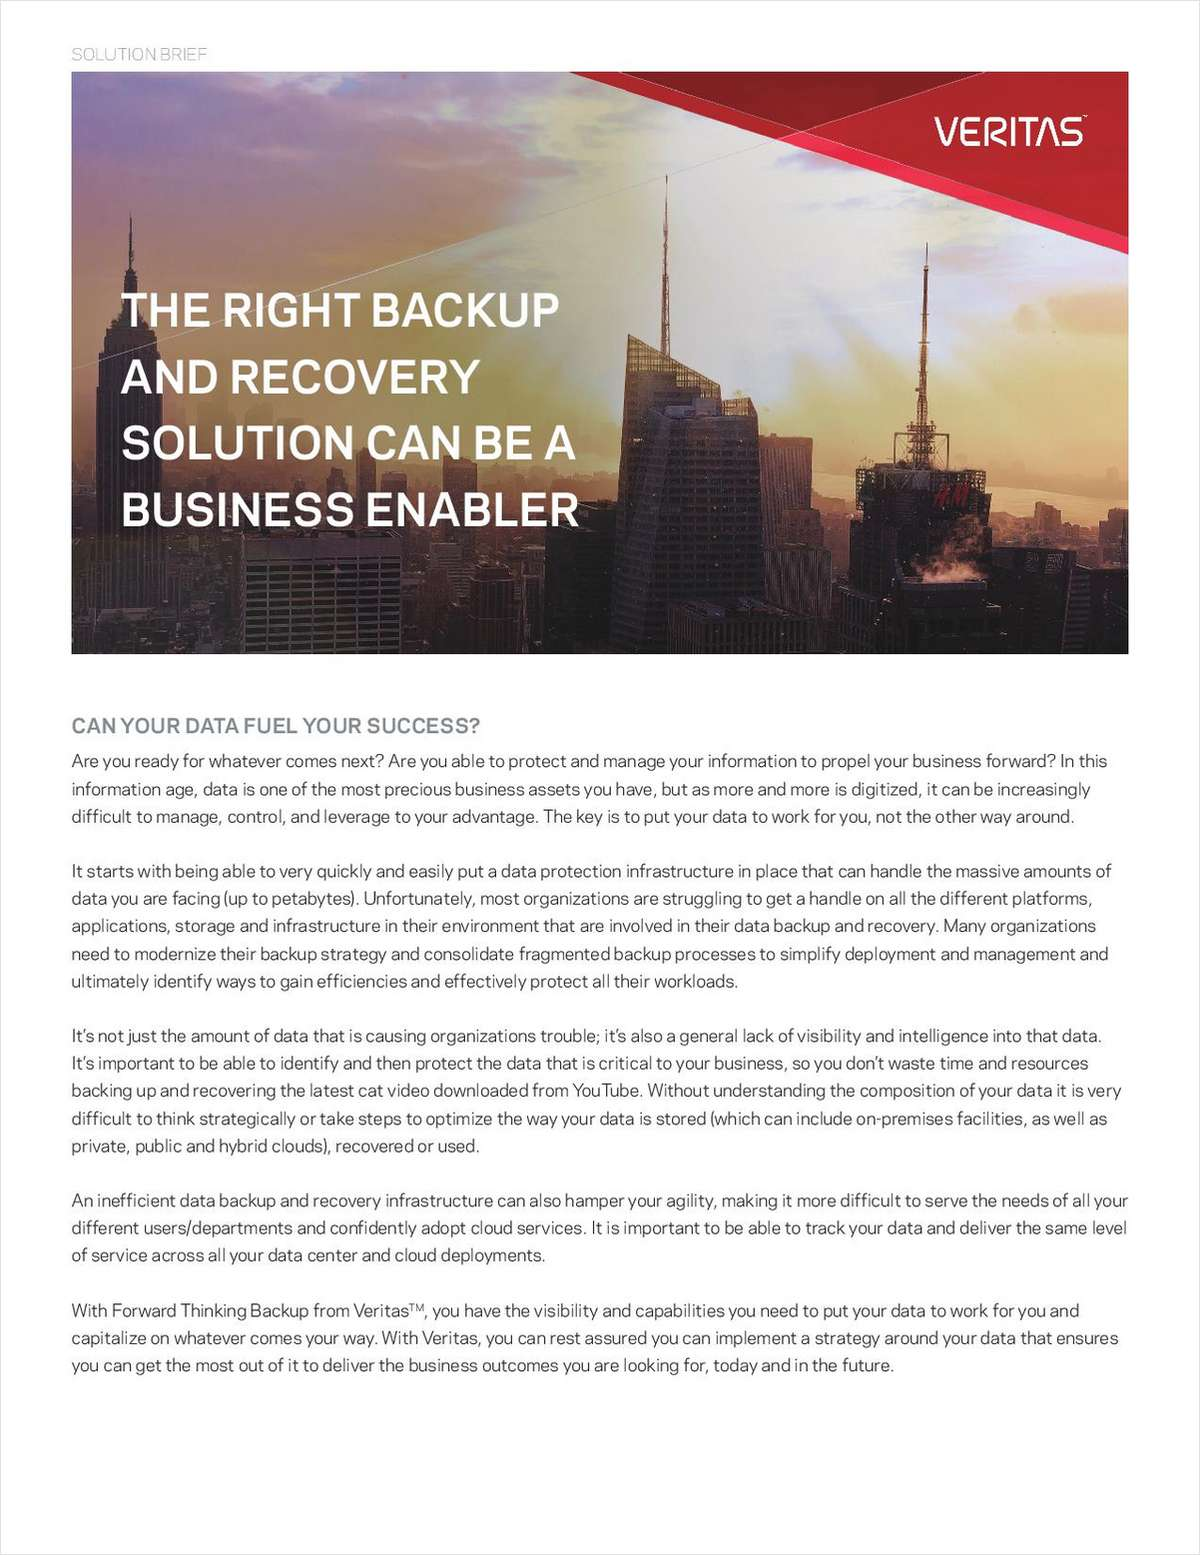 The Right Backup and Recovery Solution Can be a Business Enabler